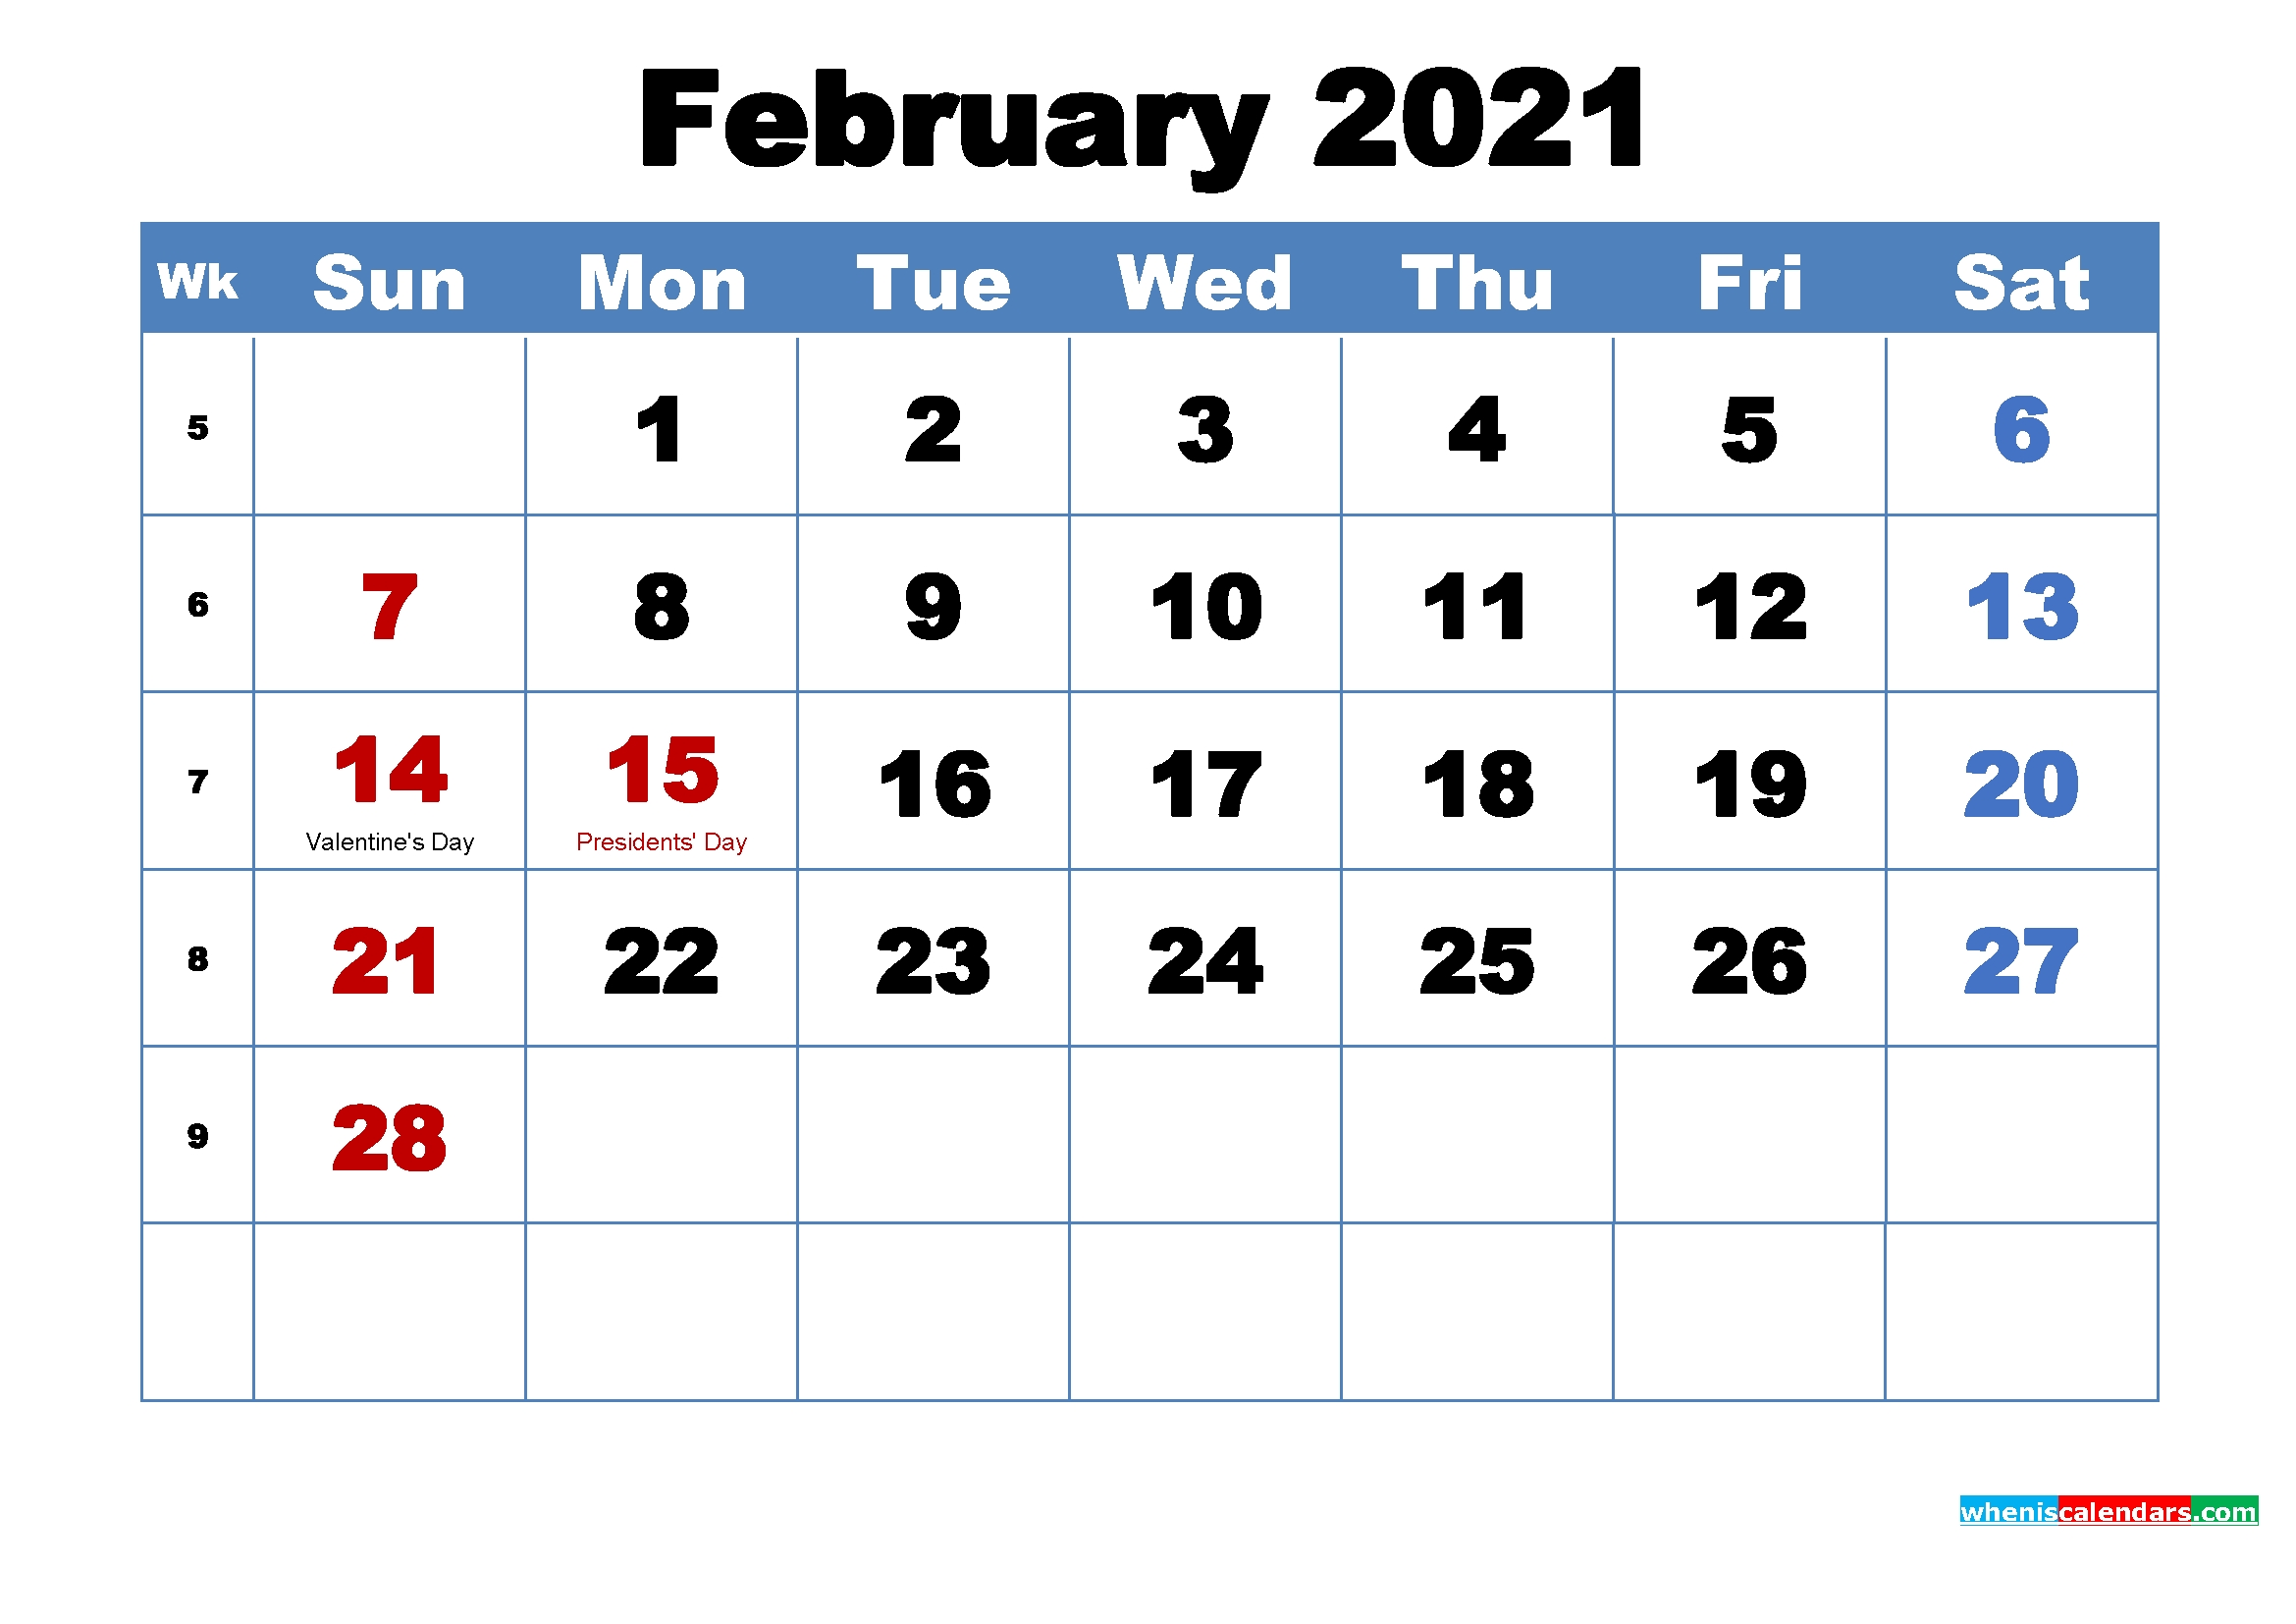 30 Free February 2021 Calendars For Home Or Office - Onedesblog-2021 Vacation Schedule